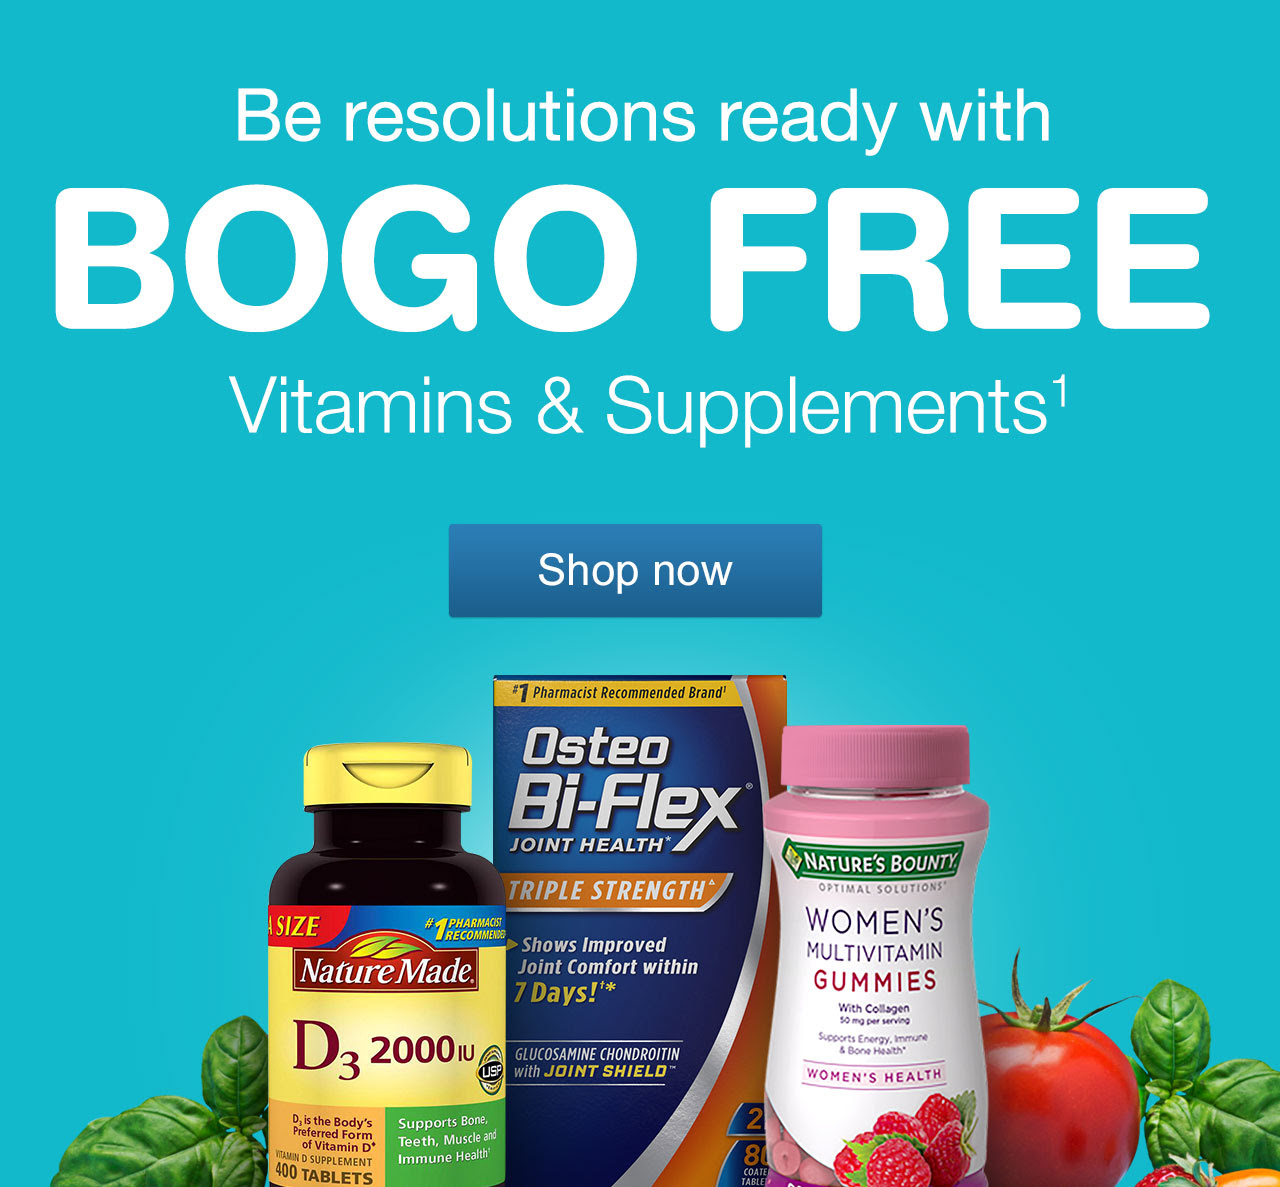 Be resolutions ready with BOGO FREE Vitamins & Supplements.